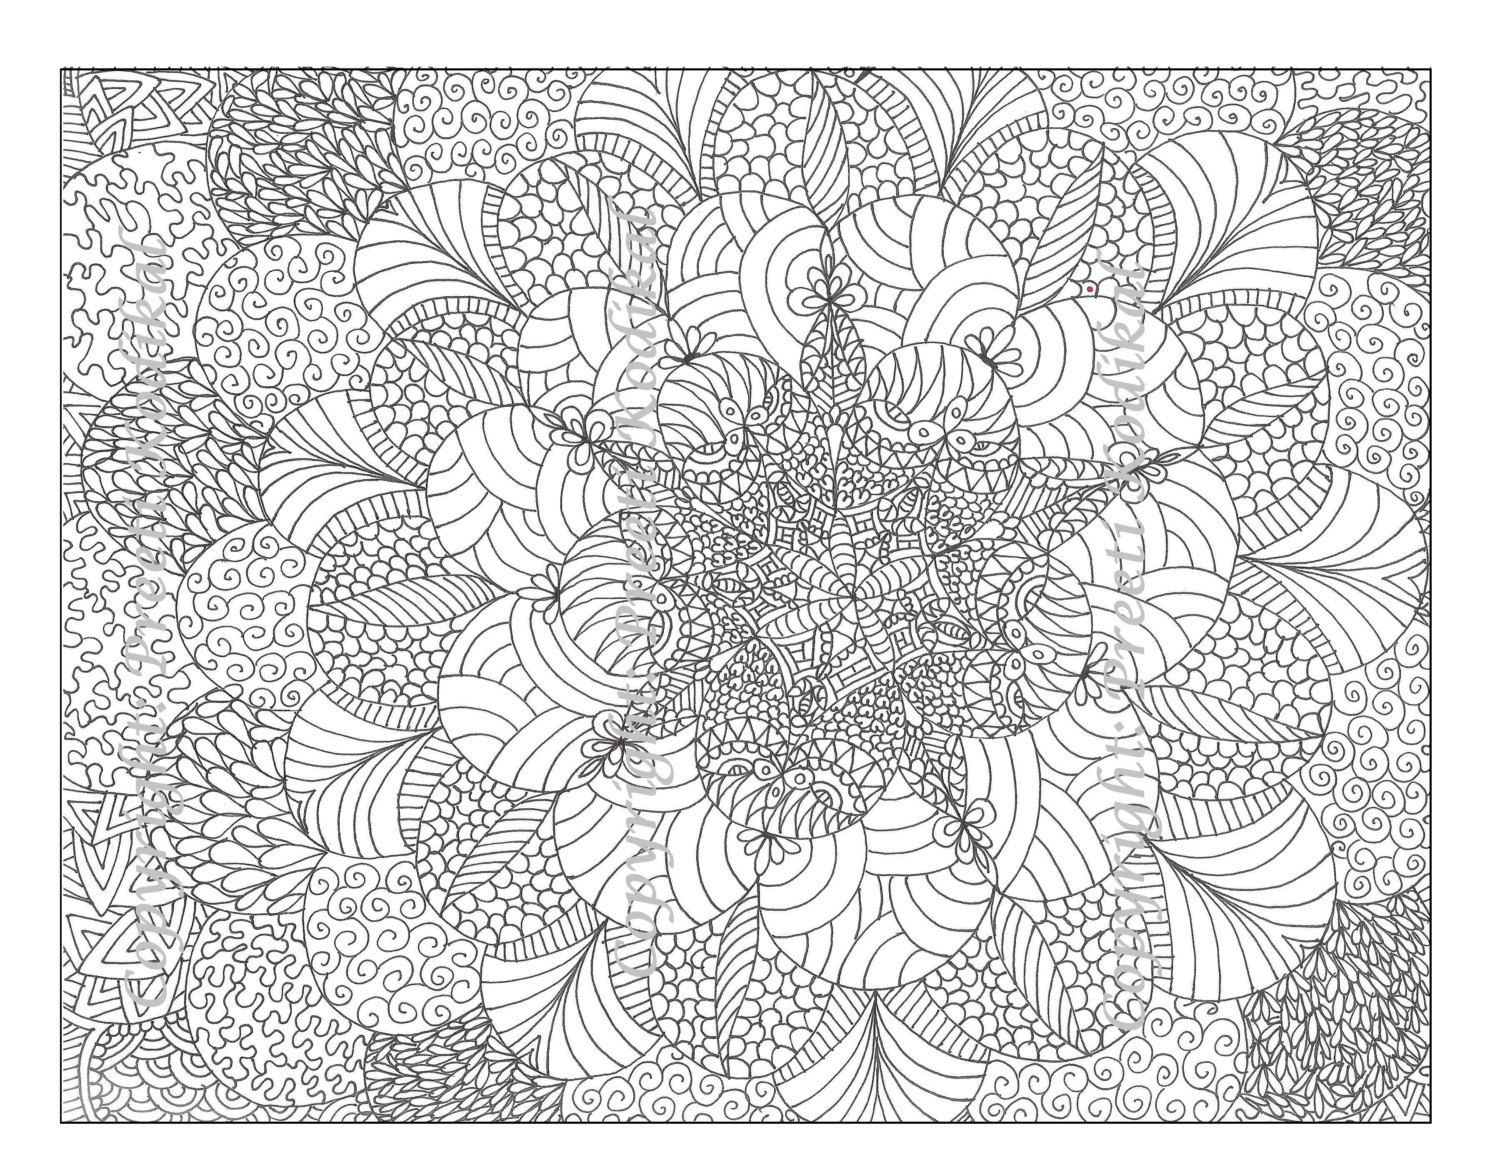 Free Printable Abstract Coloring Pages For Adults - Coloring Home - Free Printable Coloring Designs For Adults